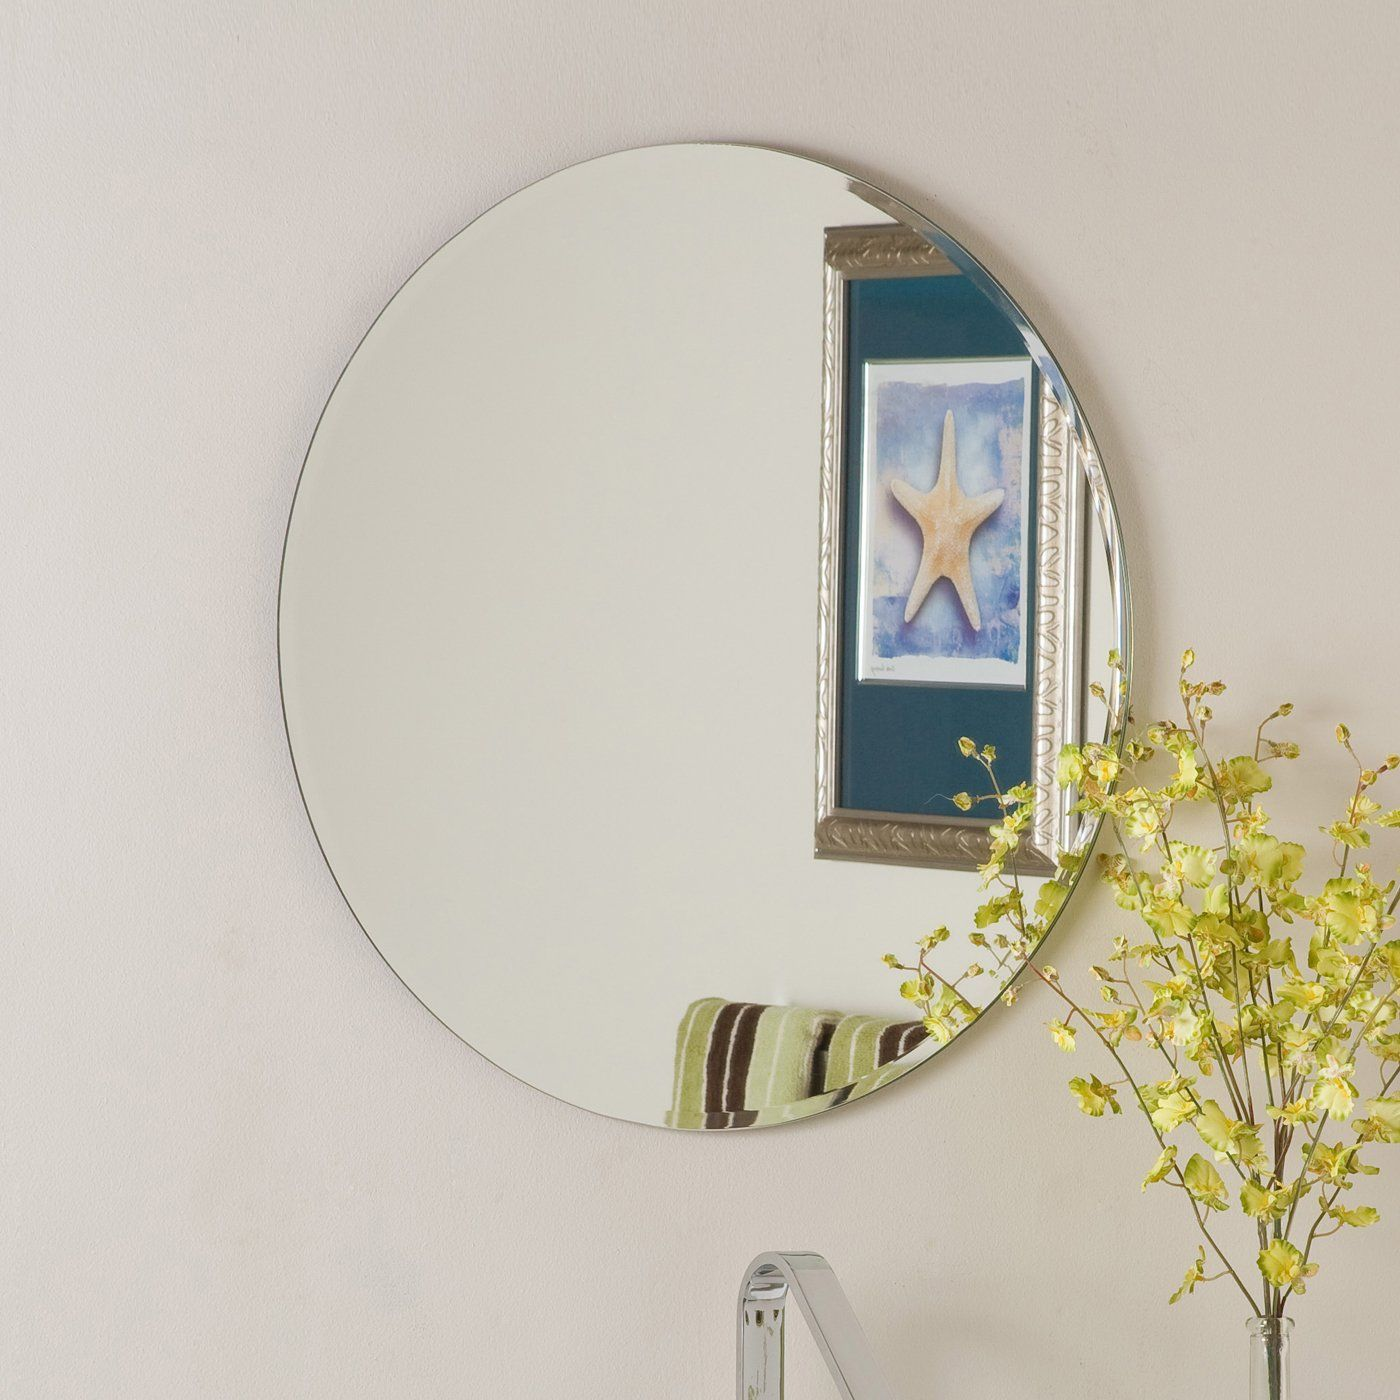 Photos On Shop Decor Wonderland SSM Frameless Round Beveled Mirror at ATG Stores Browse our bathroom mirrors